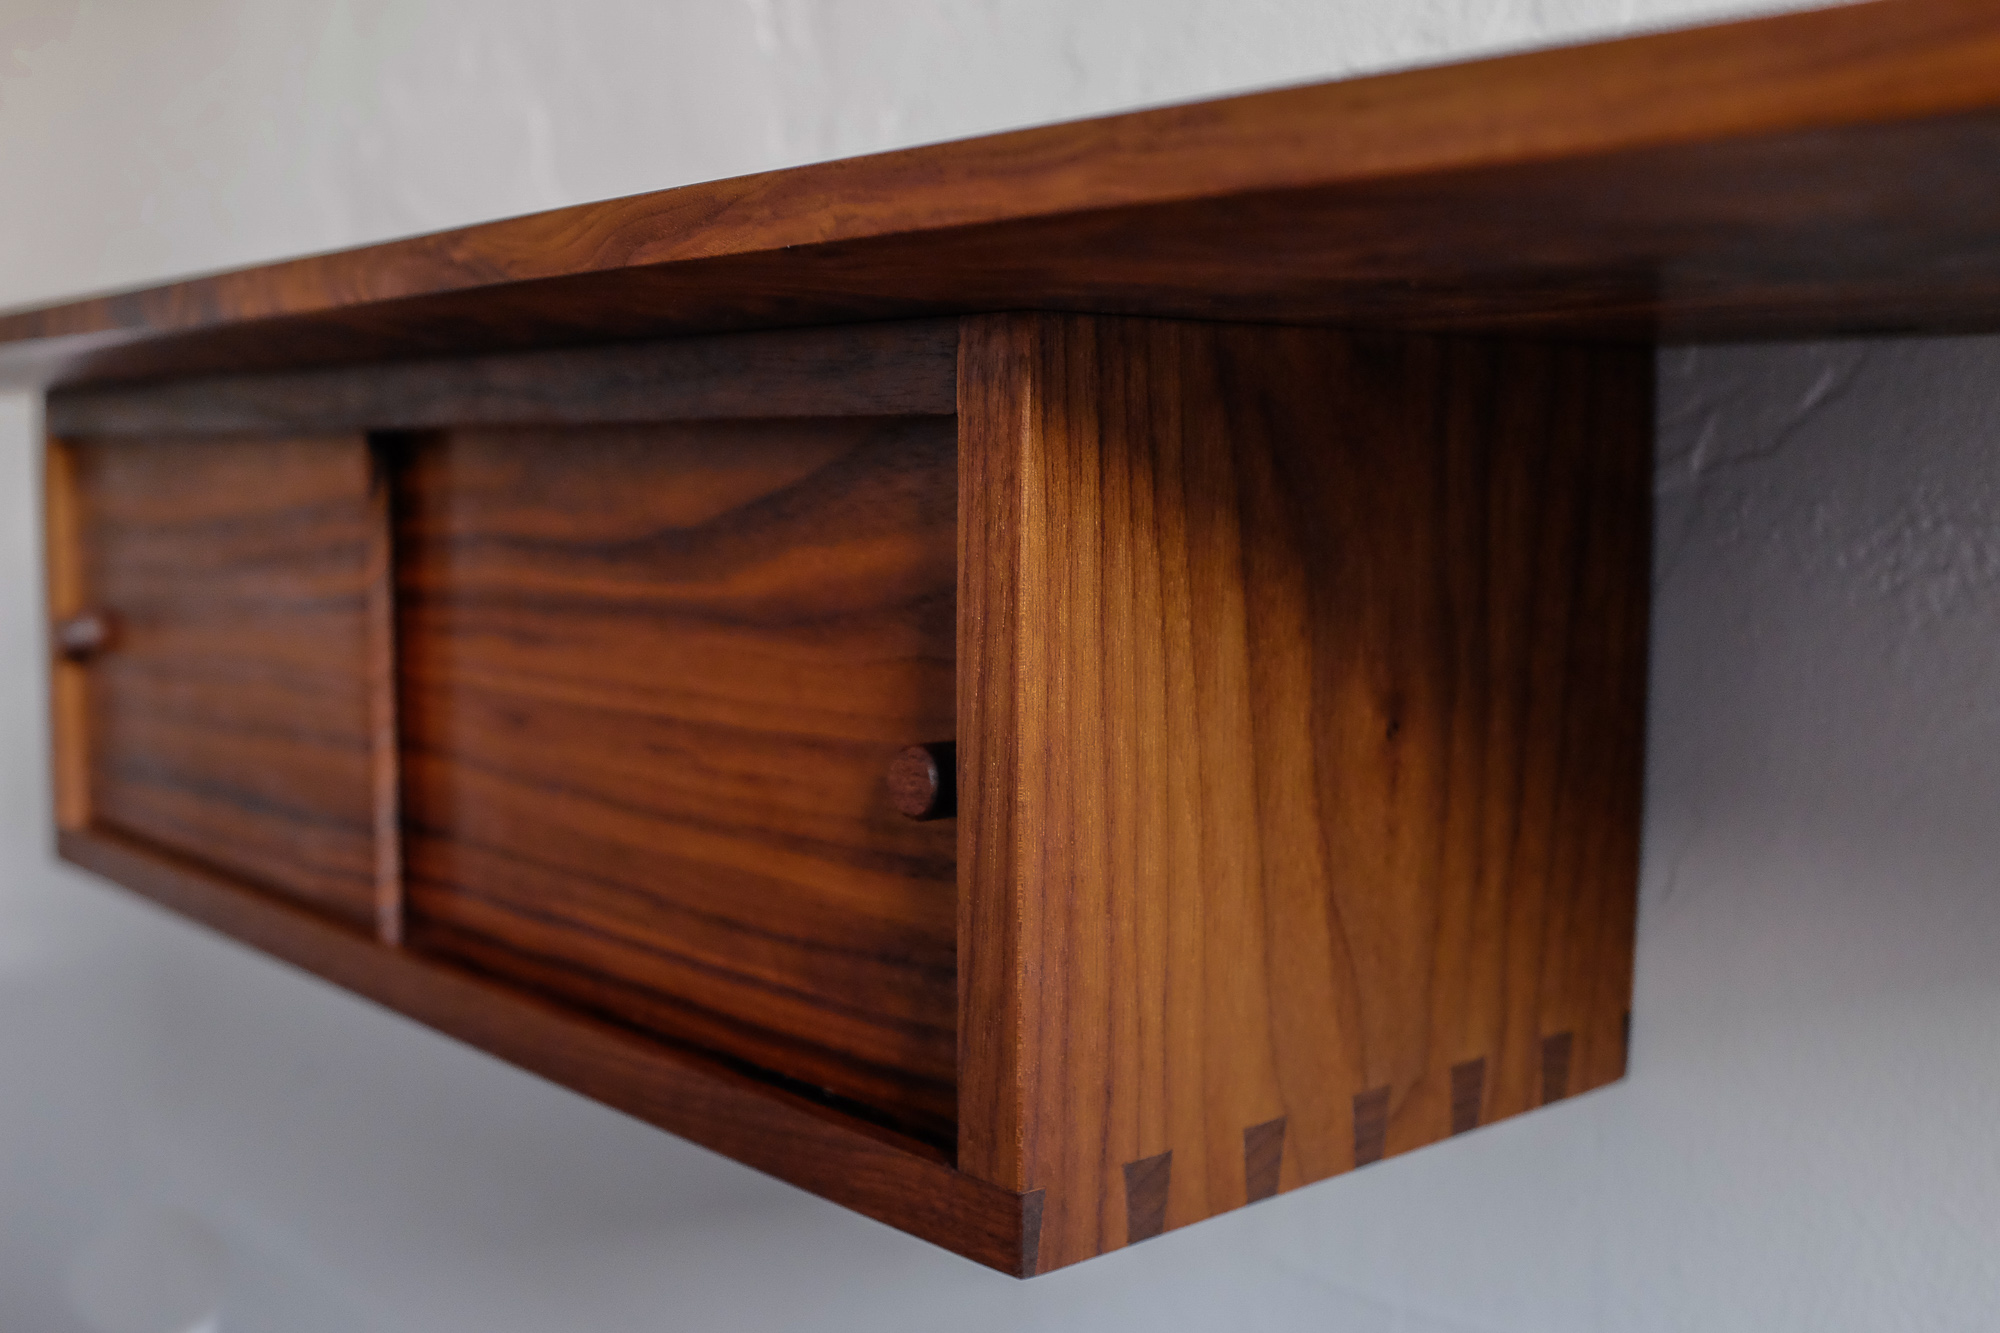 Detail of dovetail and recessed sliding door.